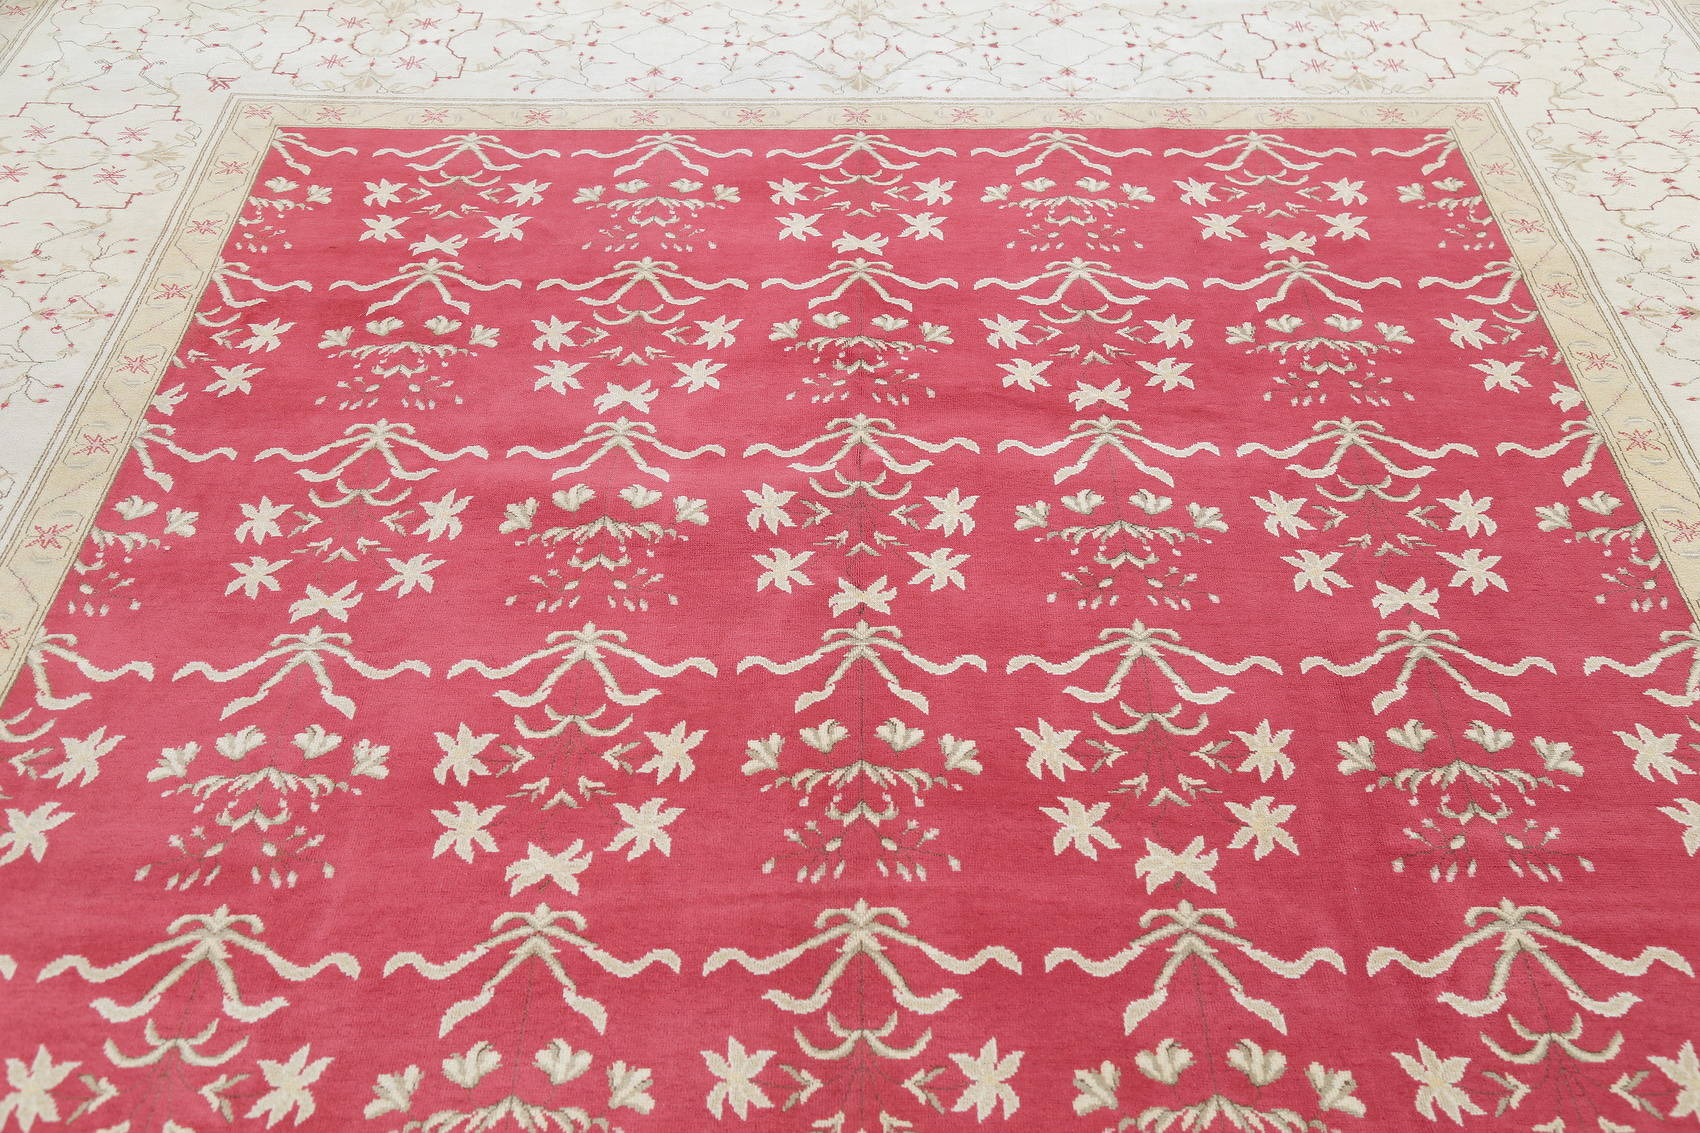 Floral Red Oushak Oriental Hand-Knotted Area Rug Wool 10x14